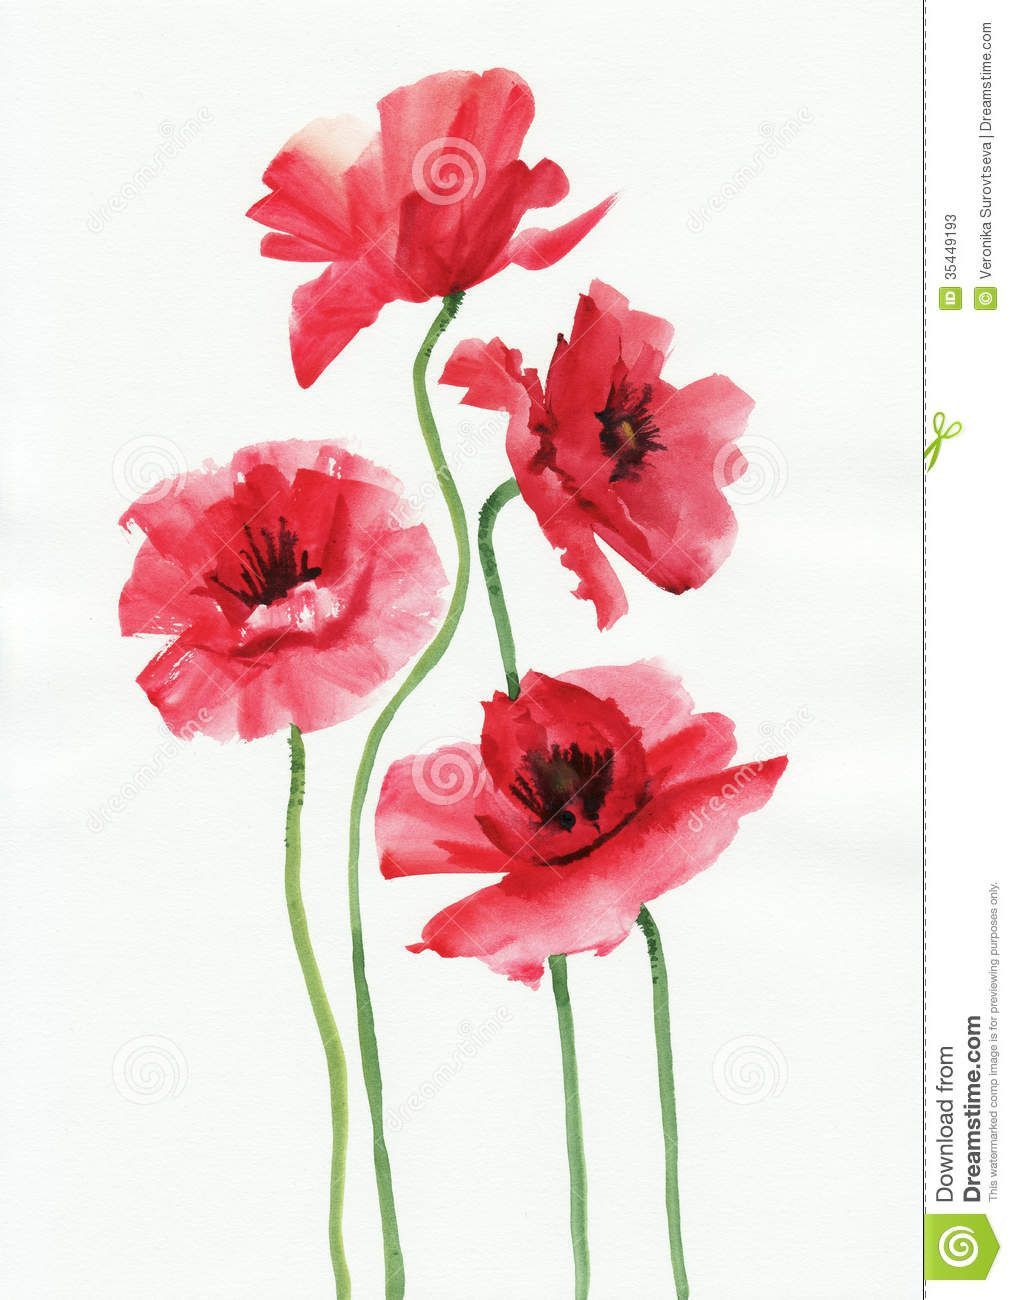 Watercolor Painting Of Red Poppies Download From Over 56 Million High Quality Stock Phot Watercolor Poppies Watercolor Flowers Paintings Watercolor Paintings